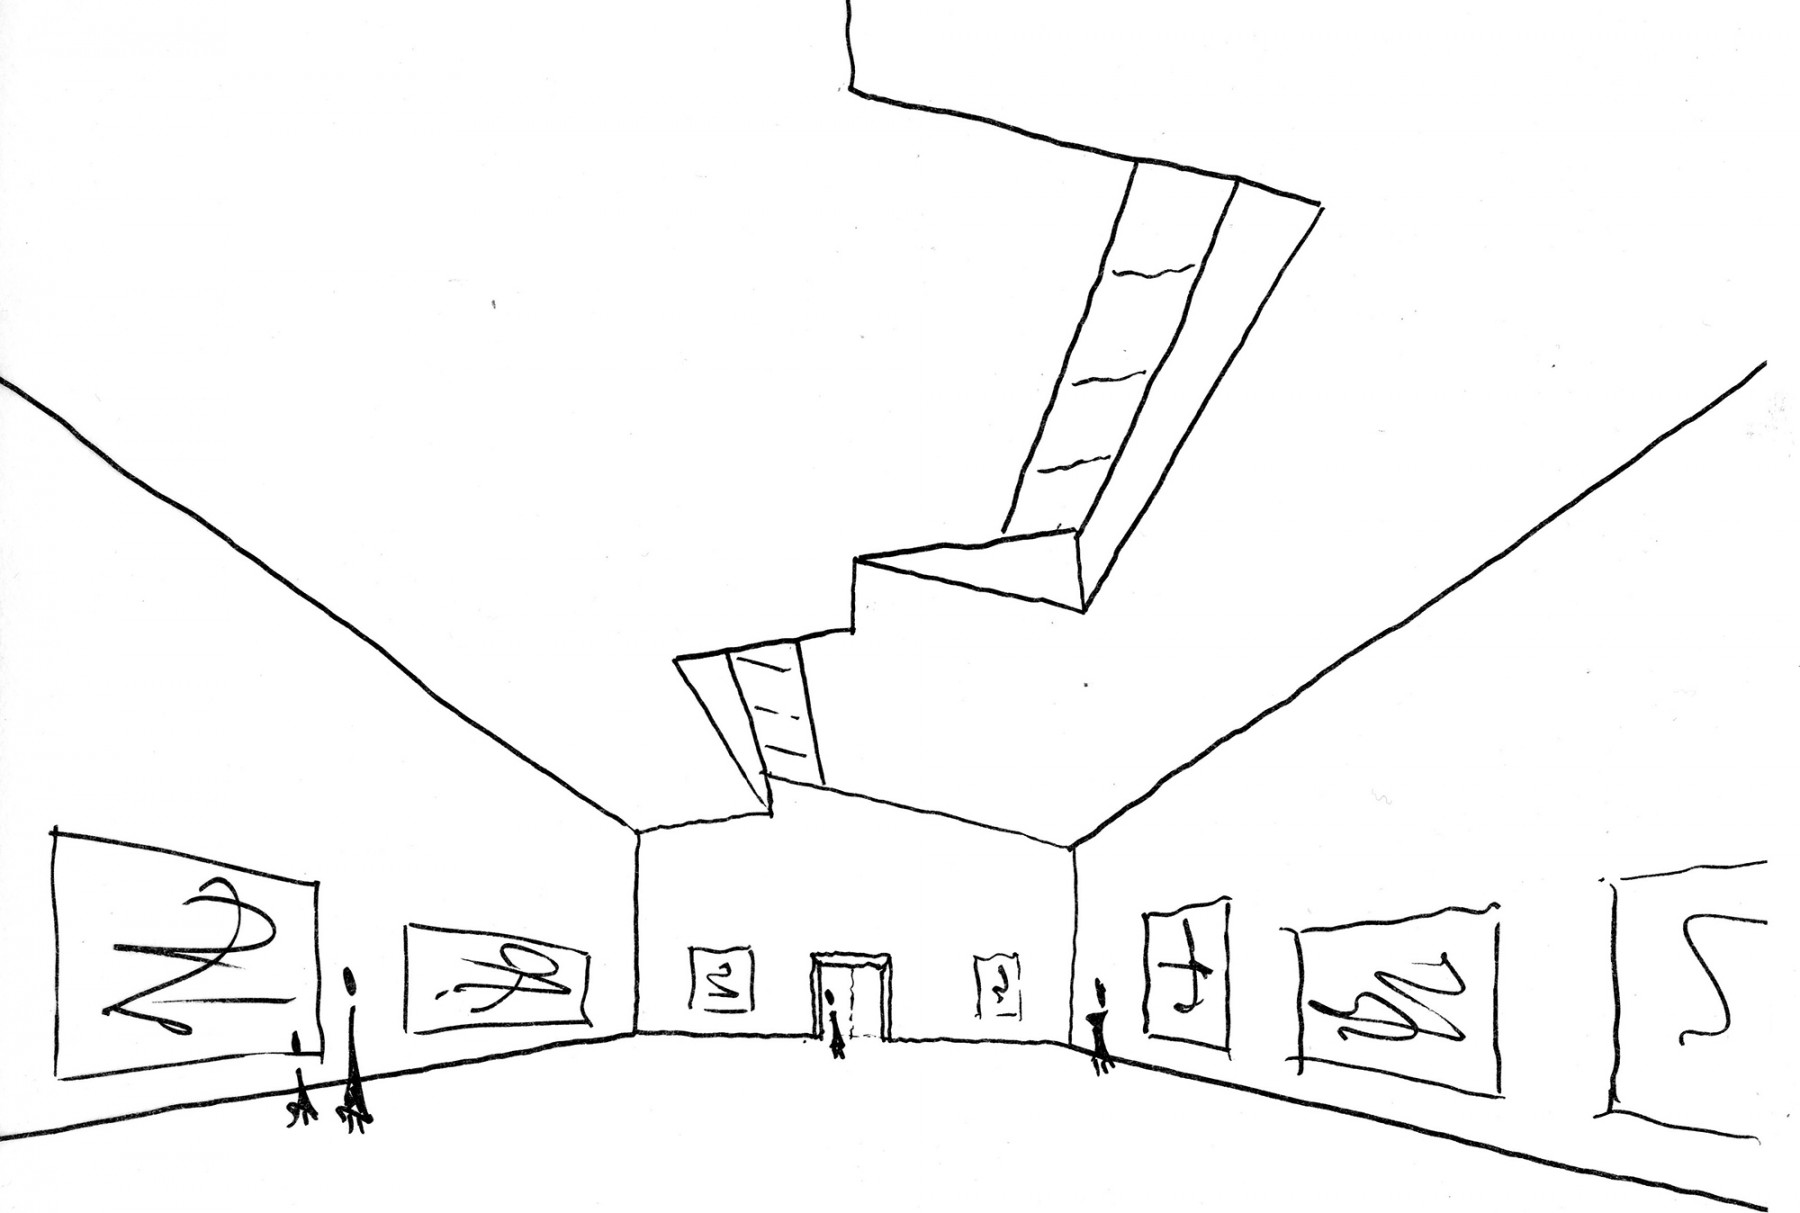 The-Garage-CCC-Moscow-Russia-Art-gallery-centre-contemporary-culture-modern-Daria-Zhukova-Jamie-Fobert-Architects-exhibition-sketch2